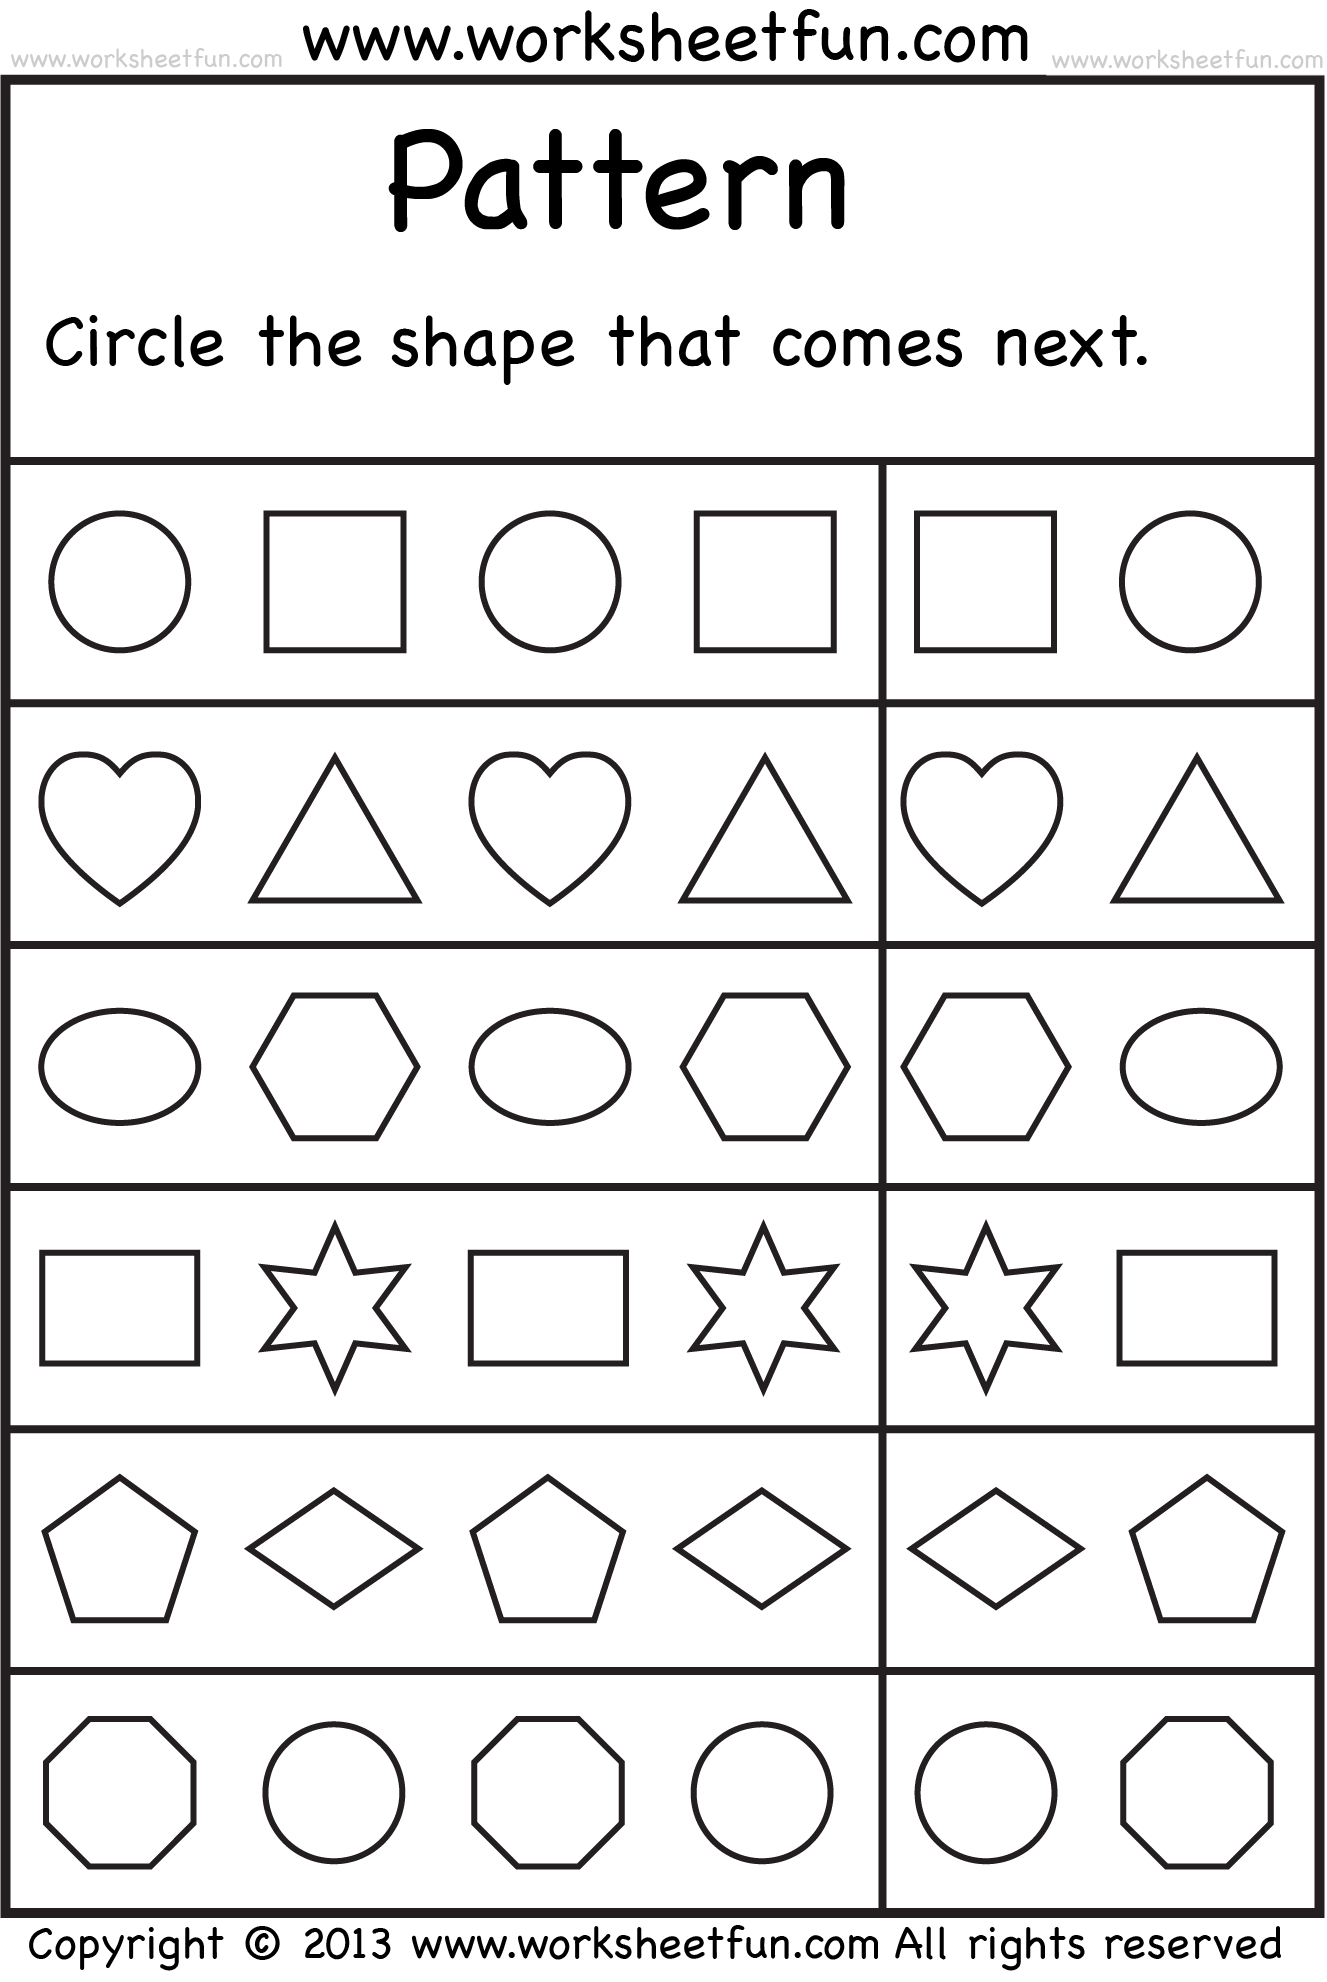 Weirdmailus  Terrific  Images About School Worksheets On Pinterest  Number Words  With Likable  Images About School Worksheets On Pinterest  Number Words Alphabet Worksheets And Free Printable Kindergarten Worksheets With Breathtaking Coin Worksheets Also  Oa  Worksheets In Addition Matter Worksheets And Plessy V Ferguson Worksheet As Well As Gas Laws Practice Worksheet Additionally Momentum Worksheet From Pinterestcom With Weirdmailus  Likable  Images About School Worksheets On Pinterest  Number Words  With Breathtaking  Images About School Worksheets On Pinterest  Number Words Alphabet Worksheets And Free Printable Kindergarten Worksheets And Terrific Coin Worksheets Also  Oa  Worksheets In Addition Matter Worksheets From Pinterestcom